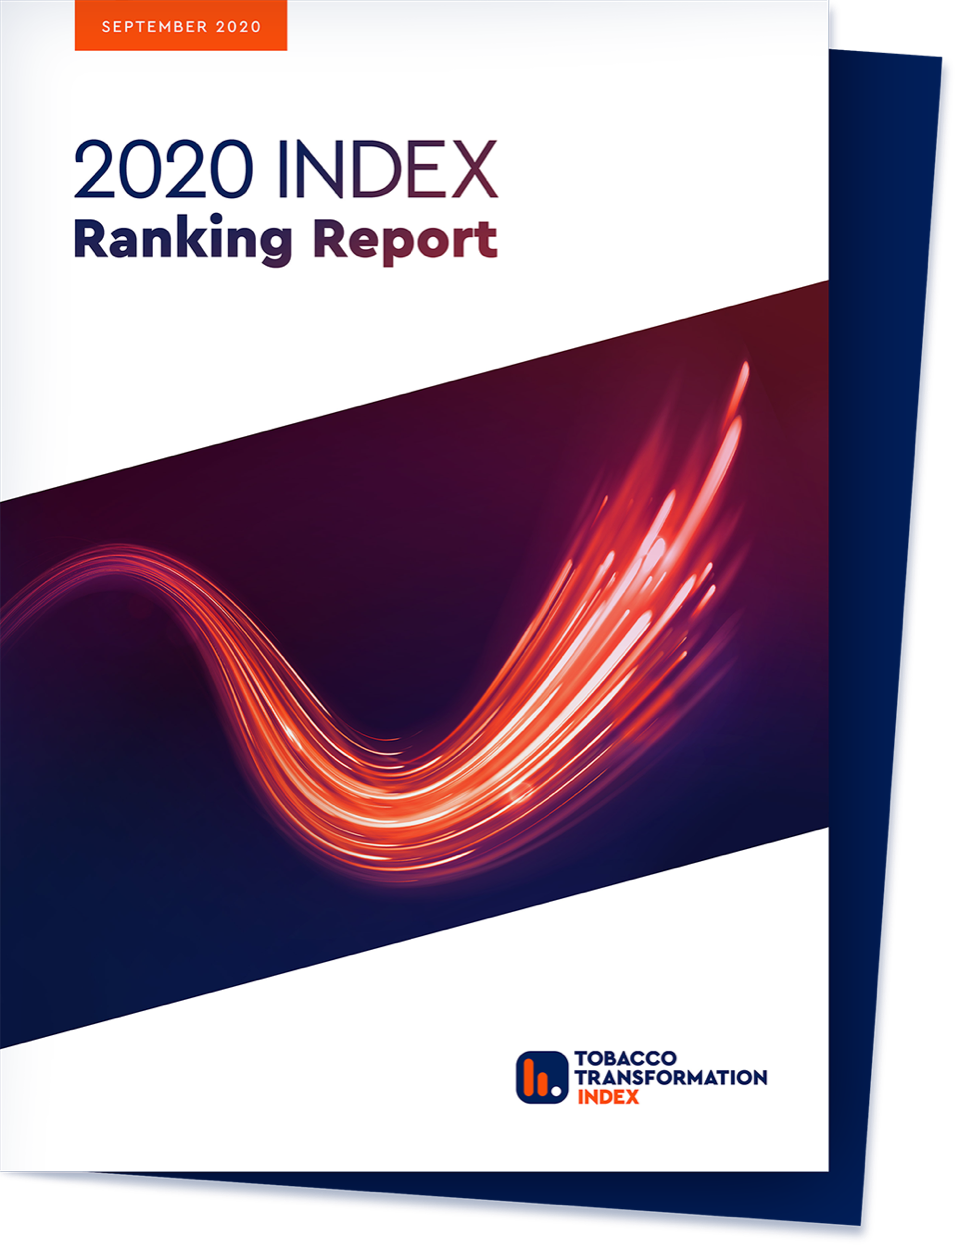 2020 Tobacco Transformation Index ™ Ranking Report